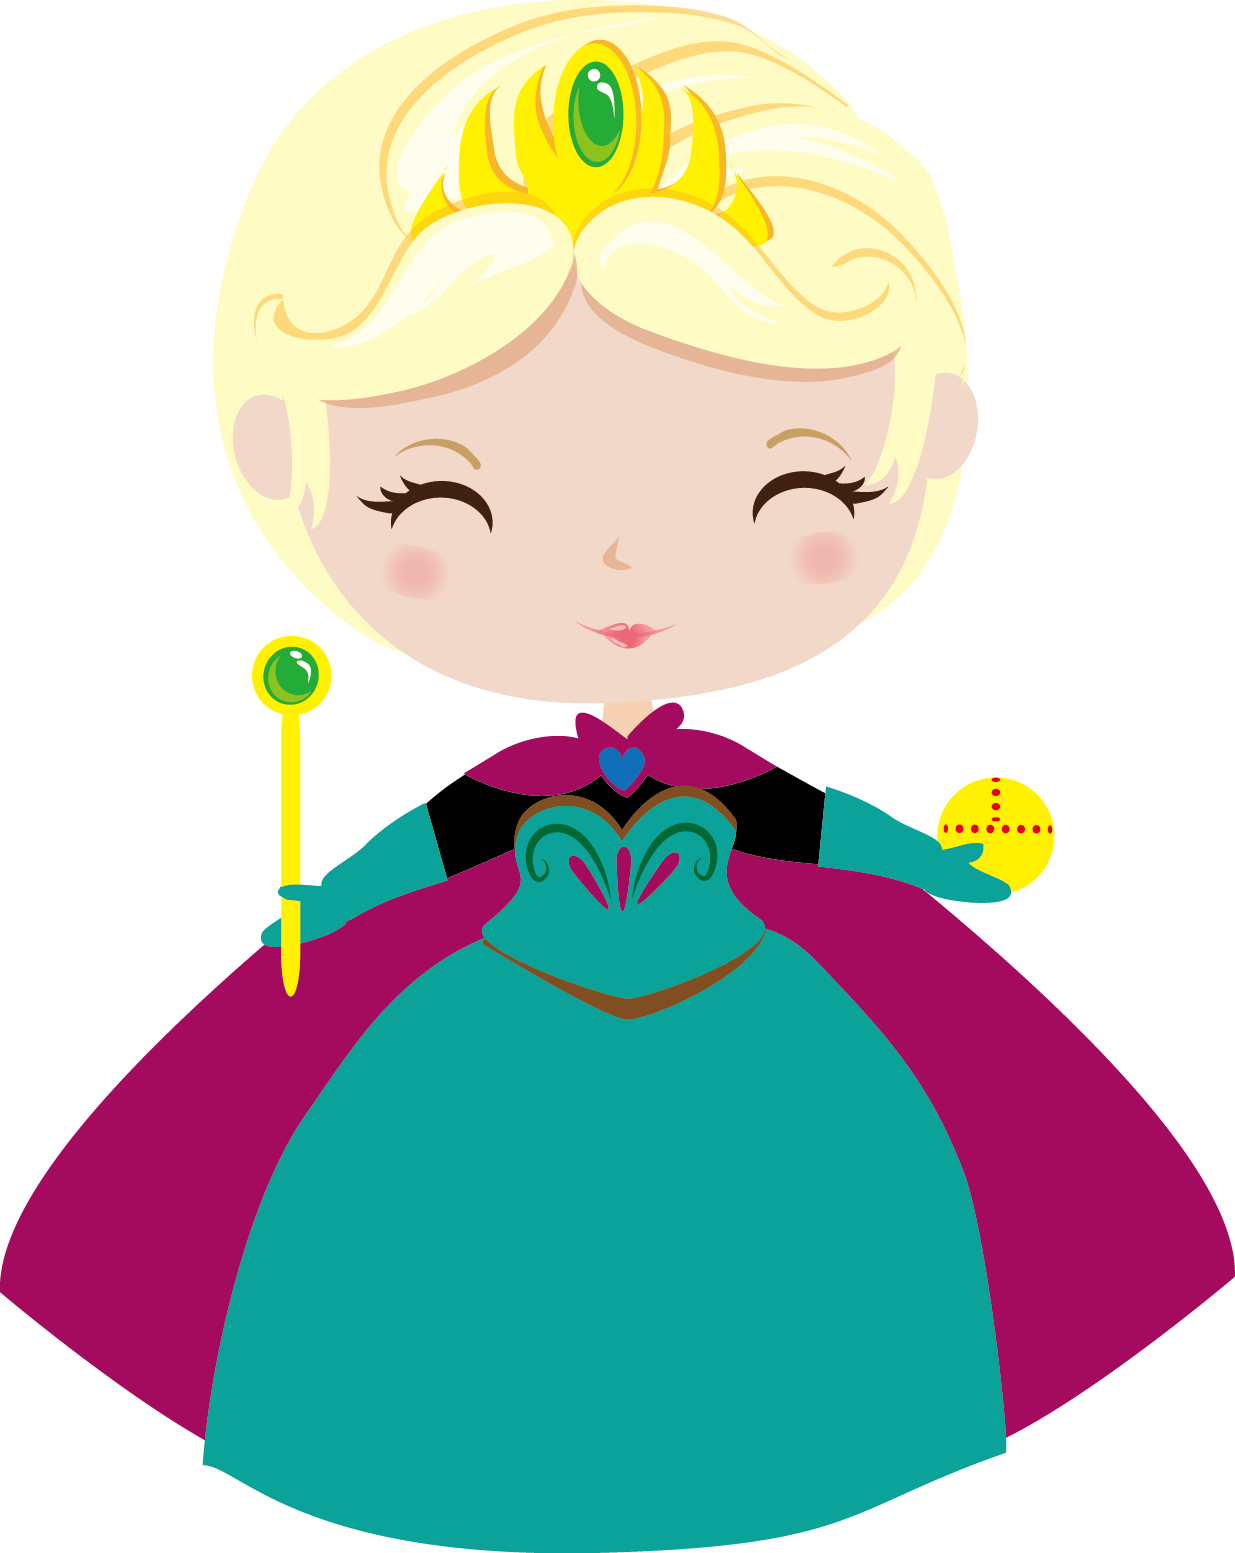 Elsa clipart birthday decoration. Preparativos para o anivers